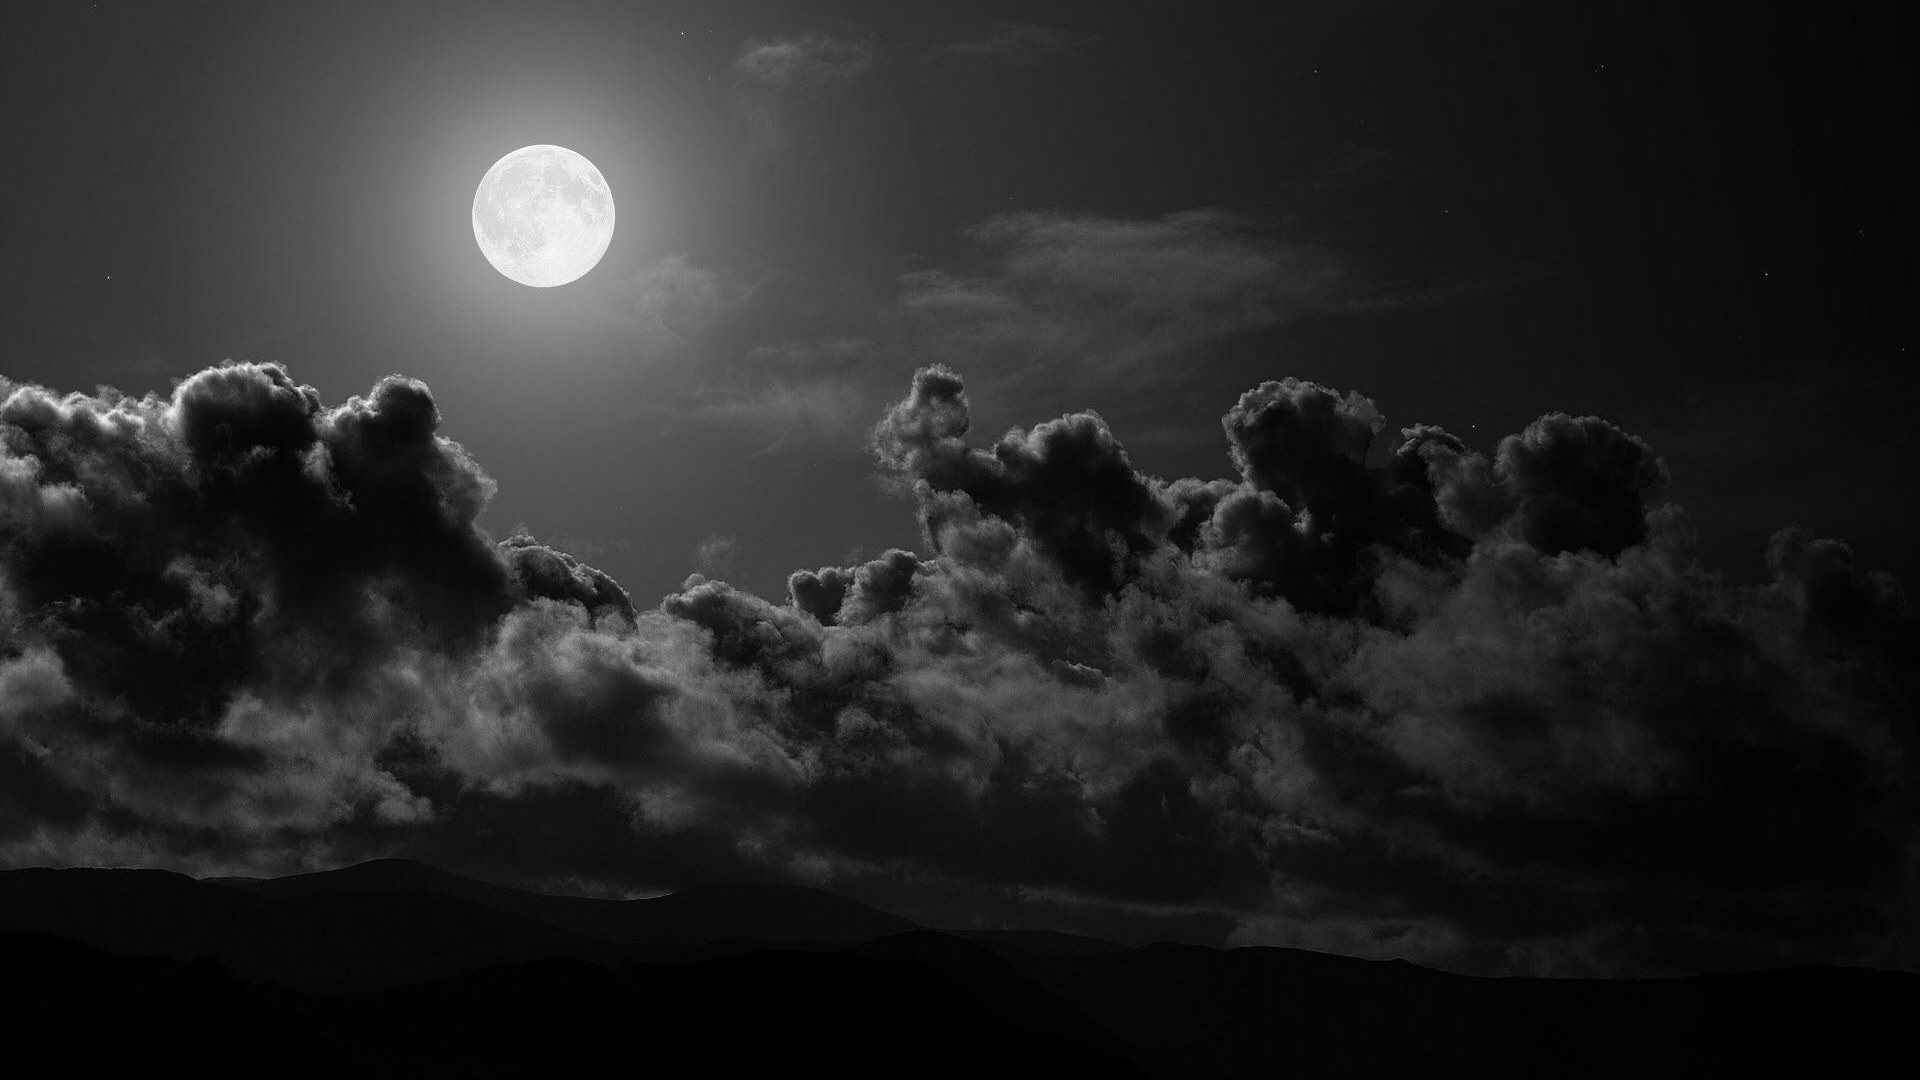 Download wallpaper 1920x1080 moon clouds sky black and white full get the latest moon clouds sky news pictures and videos and learn all about moon clouds sky from wallpapers4u your wallpaper news source voltagebd Gallery